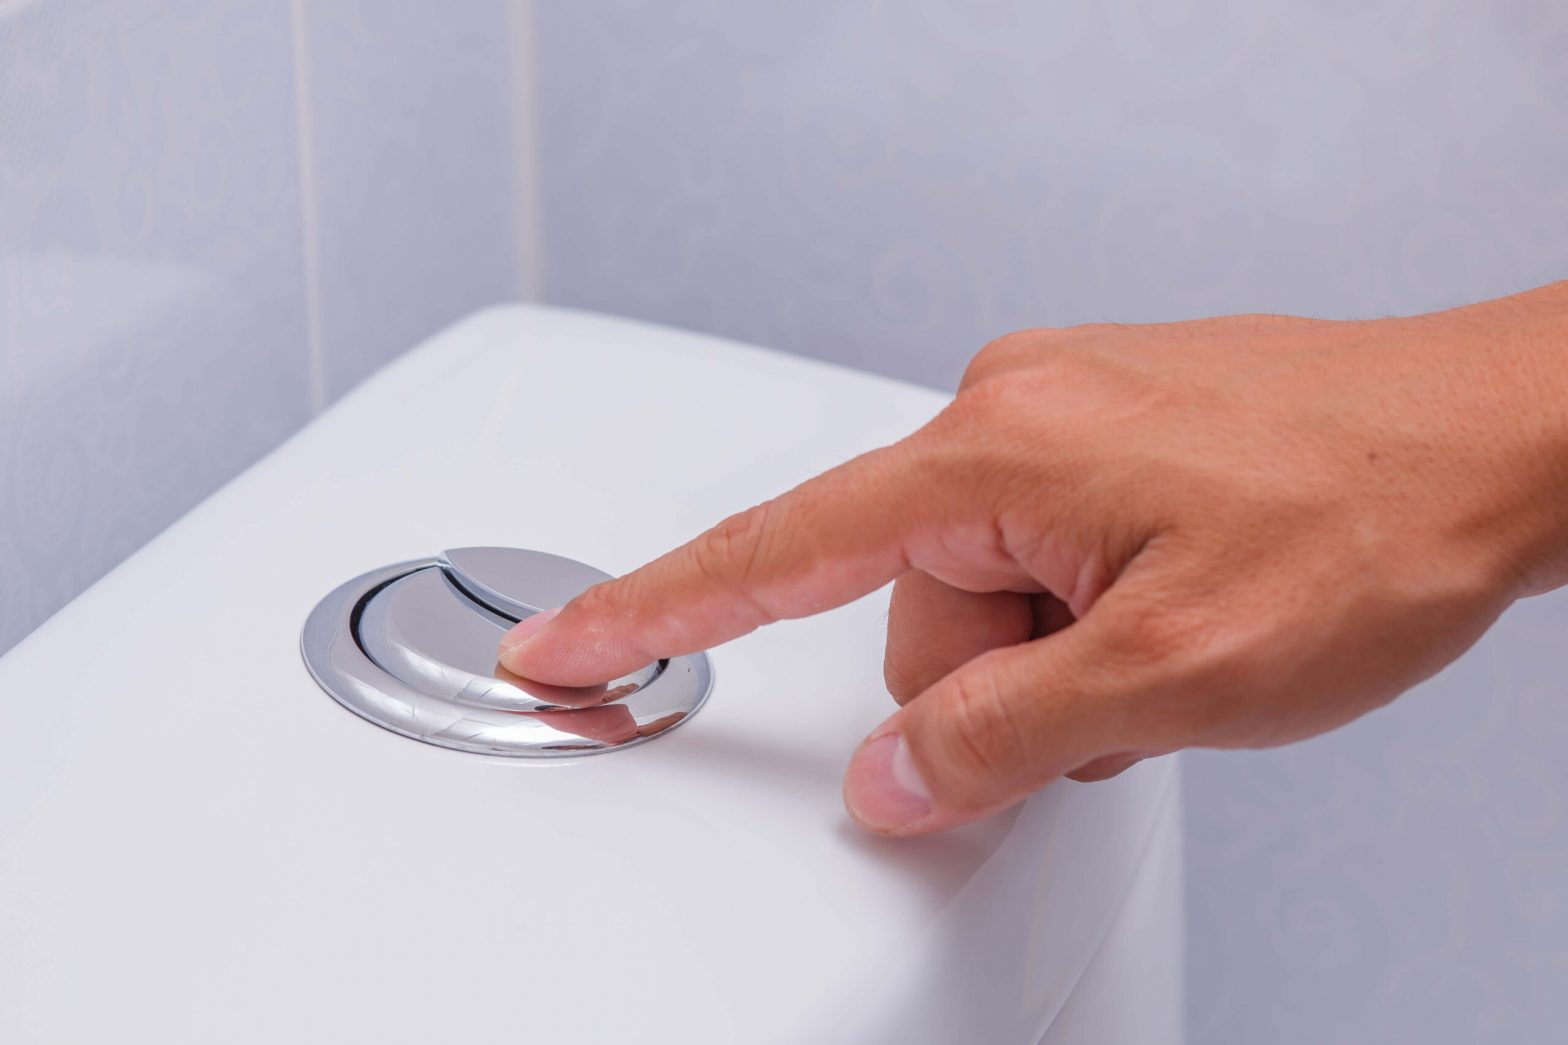 5 Reasons Why Your Toilet Isn't Flushing All the Way